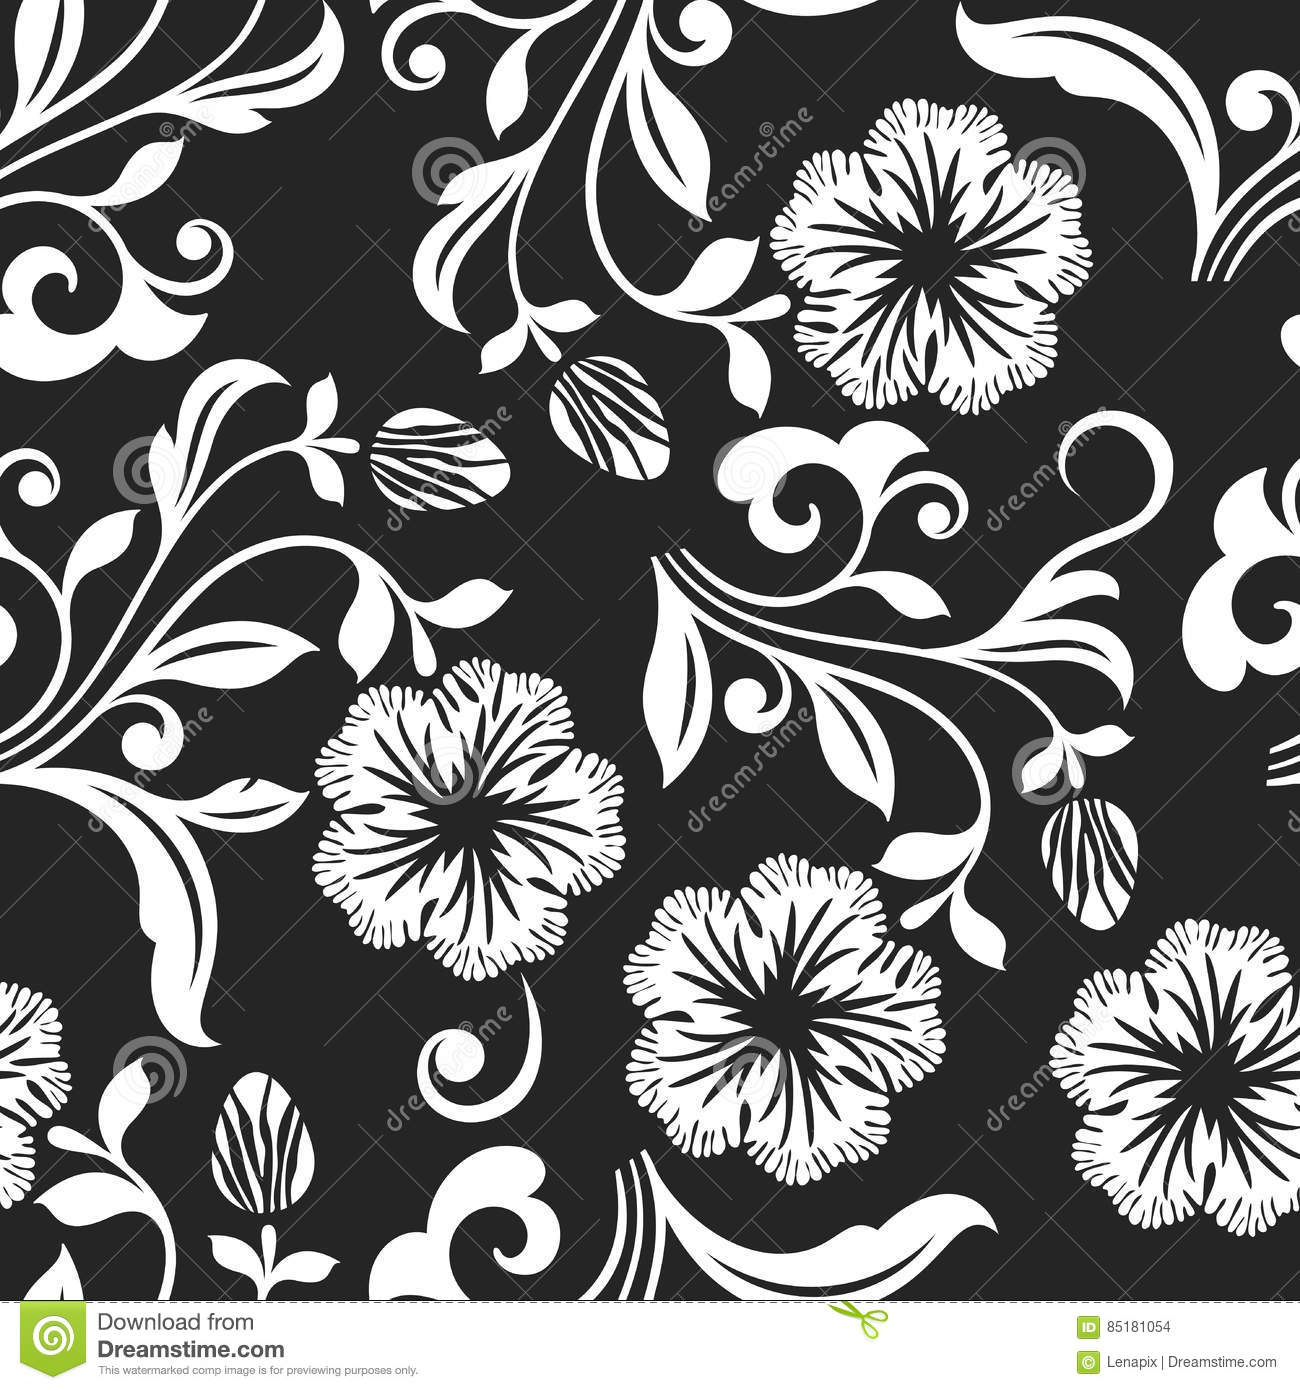 Seamless black and white flower background